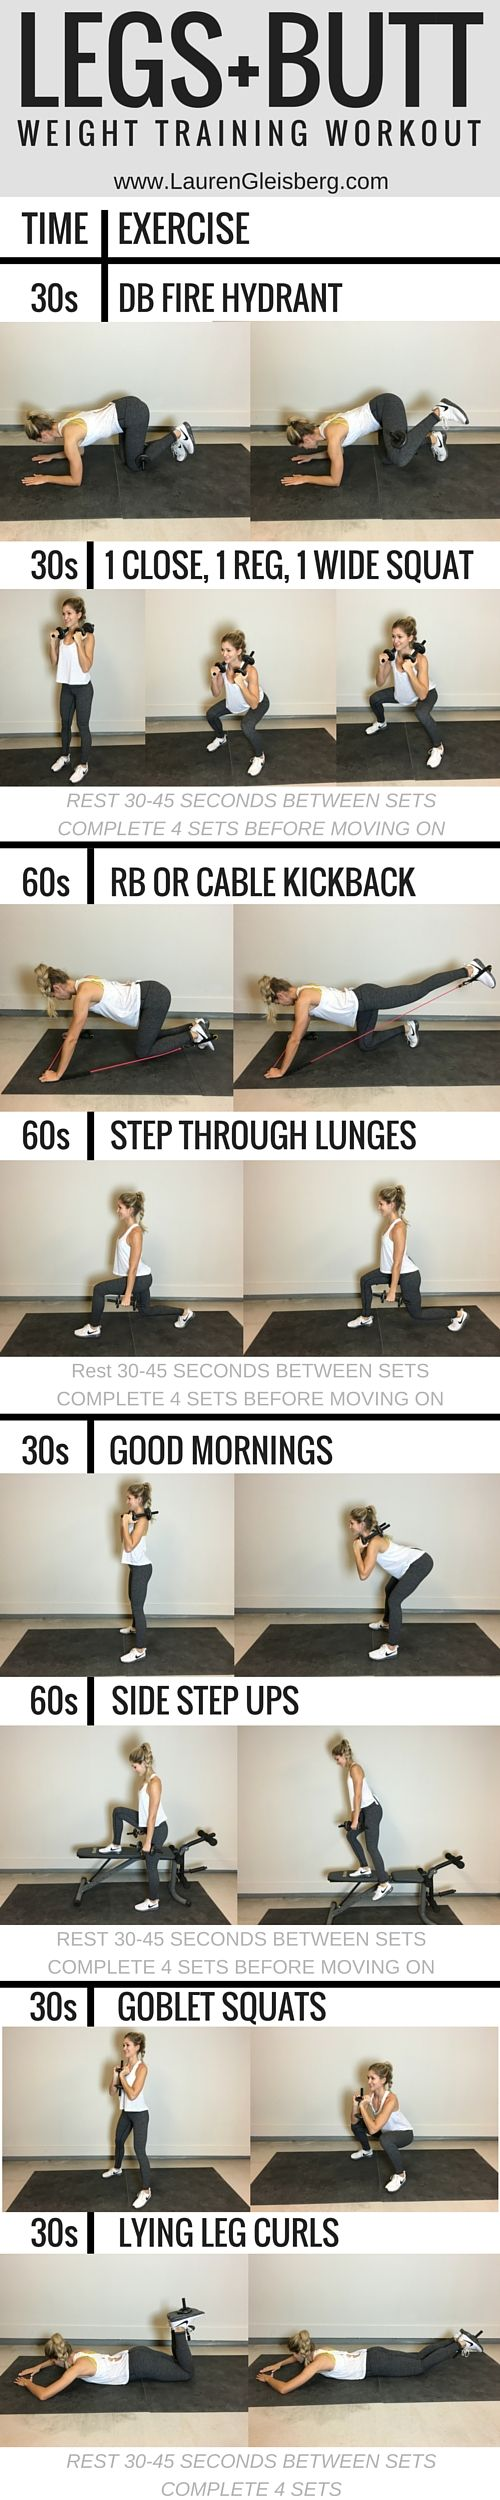 Legs + Butt Workout | click for the full plan